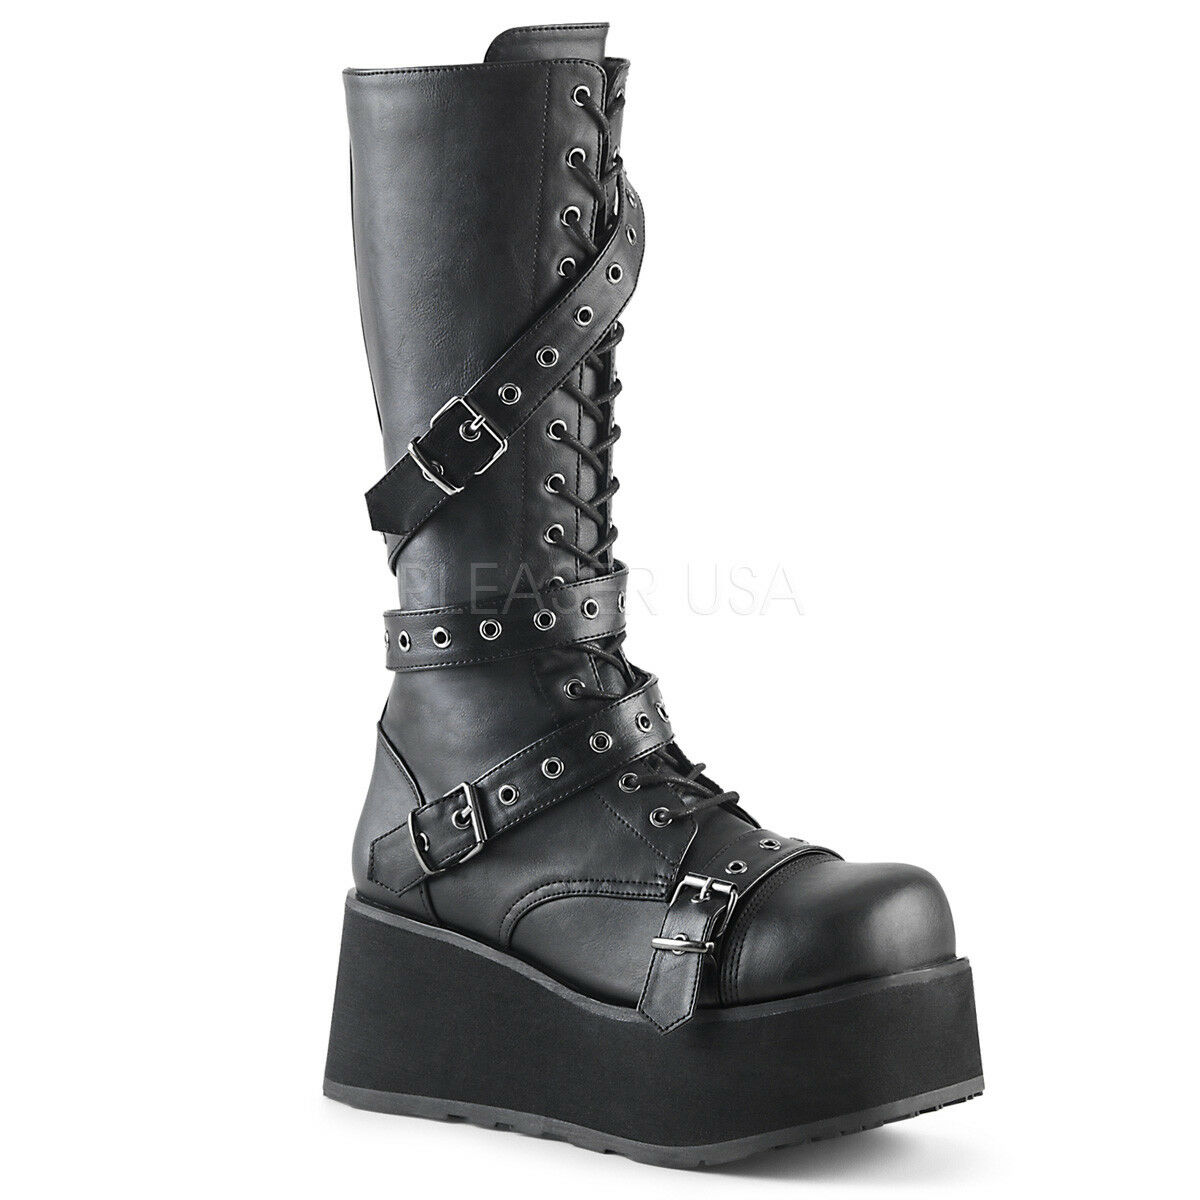 DEMONIA TRA520 BVL Men's Gothic Punk Black Platform Knee High Boots with Straps